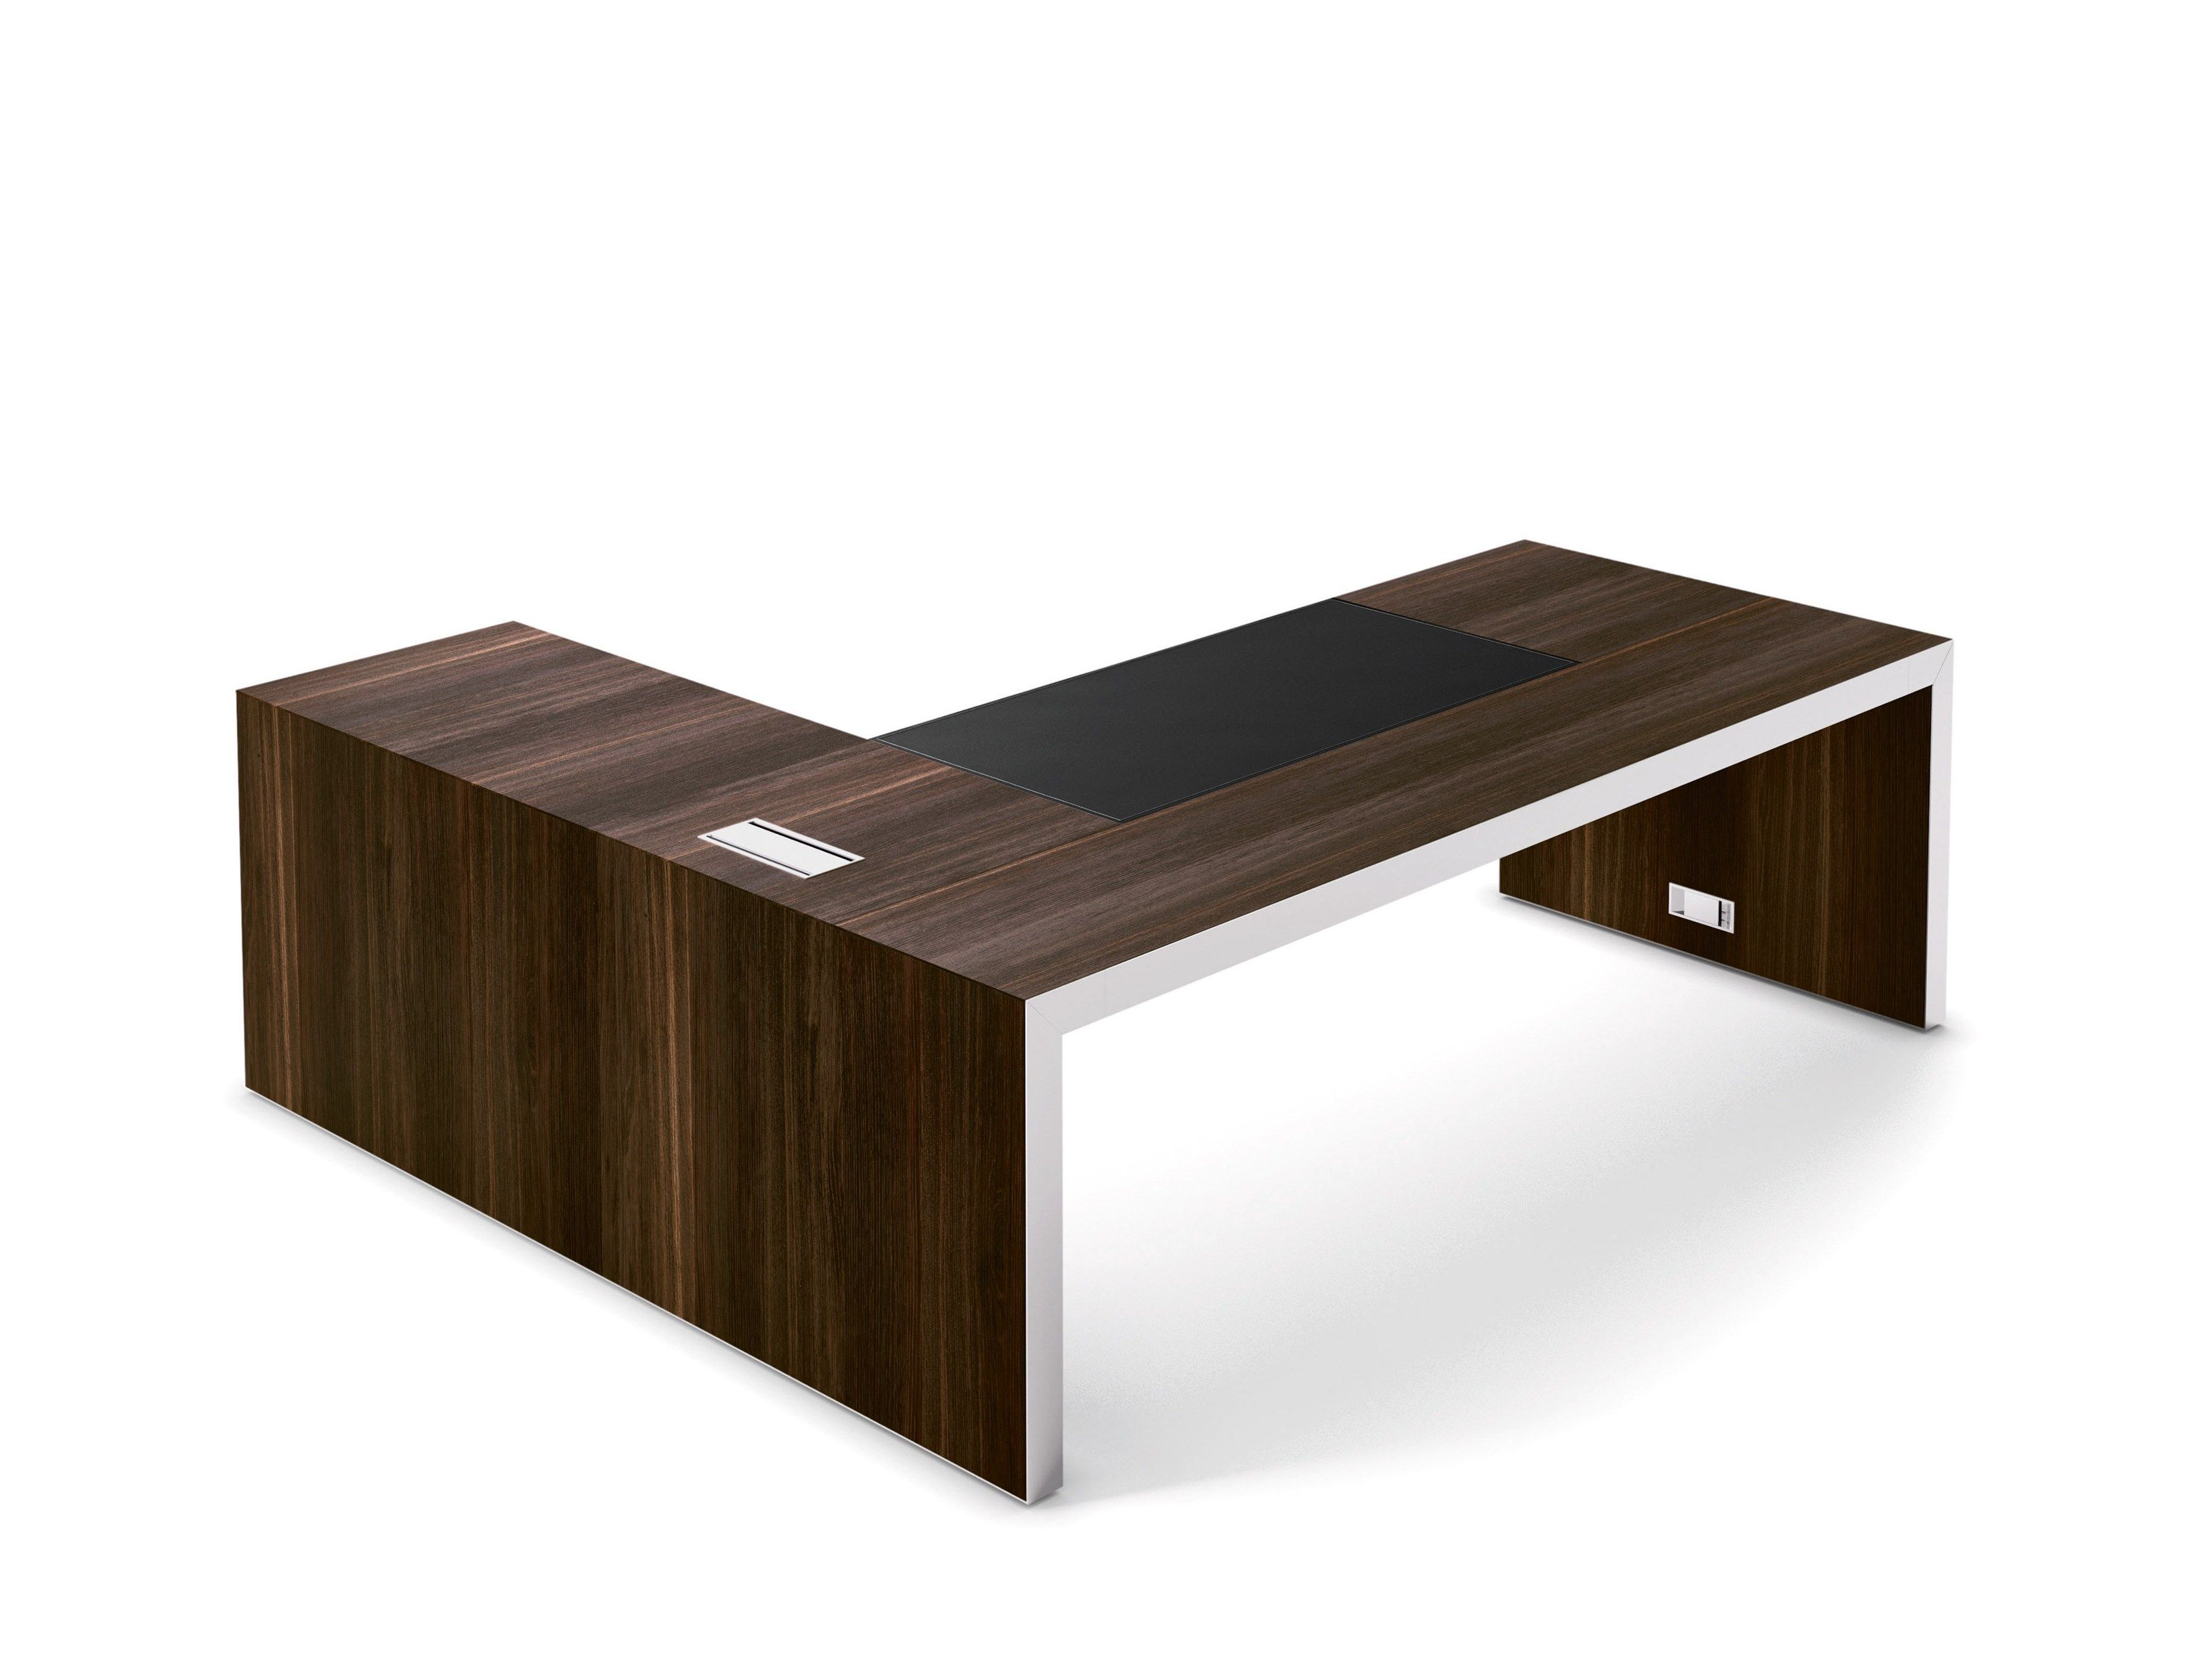 L Shaped Executive Desk Vogue By Sinetica Industries Design Sinetica Design Lab L Shaped Office Desk L Shaped Executive Desk Desk